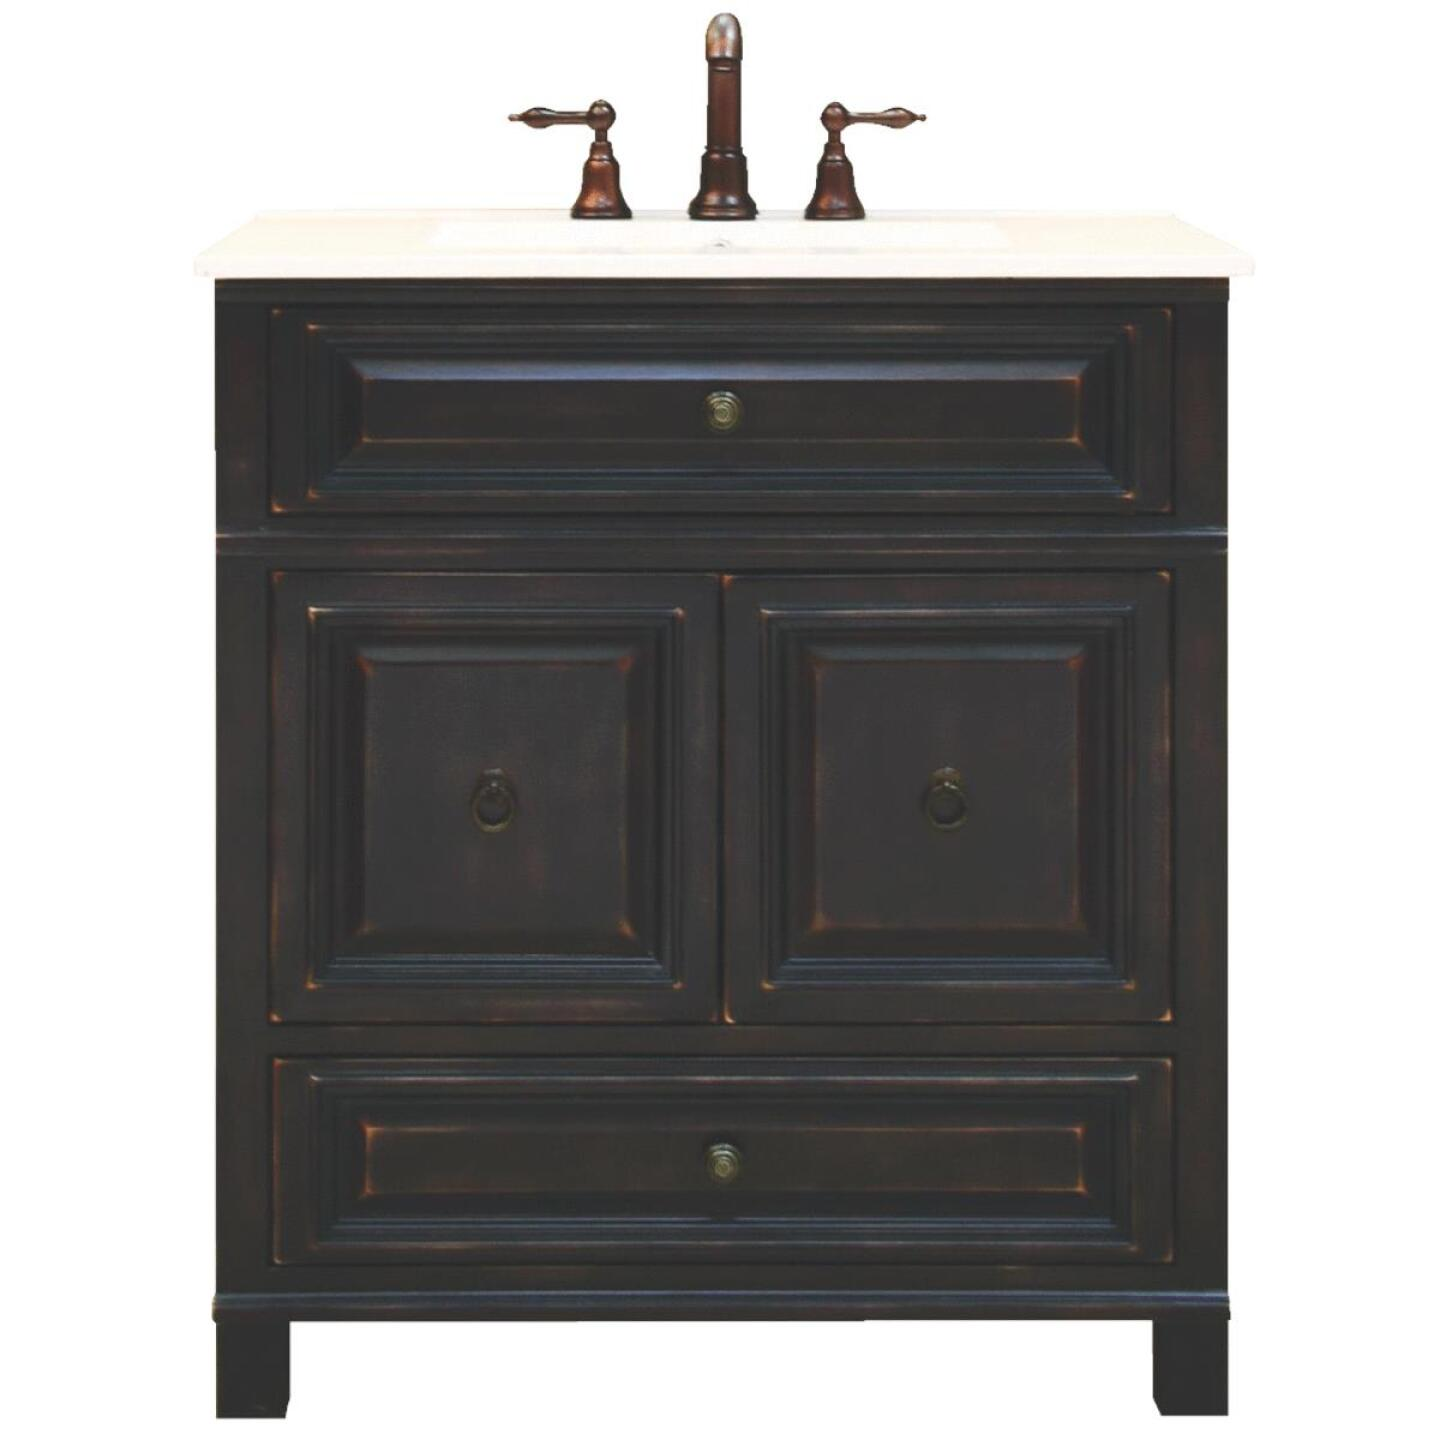 Sunny Wood Barton Hill Black Onyx 30 In. W x 34 In. H x 21 In. D Vanity Base, 2 Door/1 Drawer Image 266